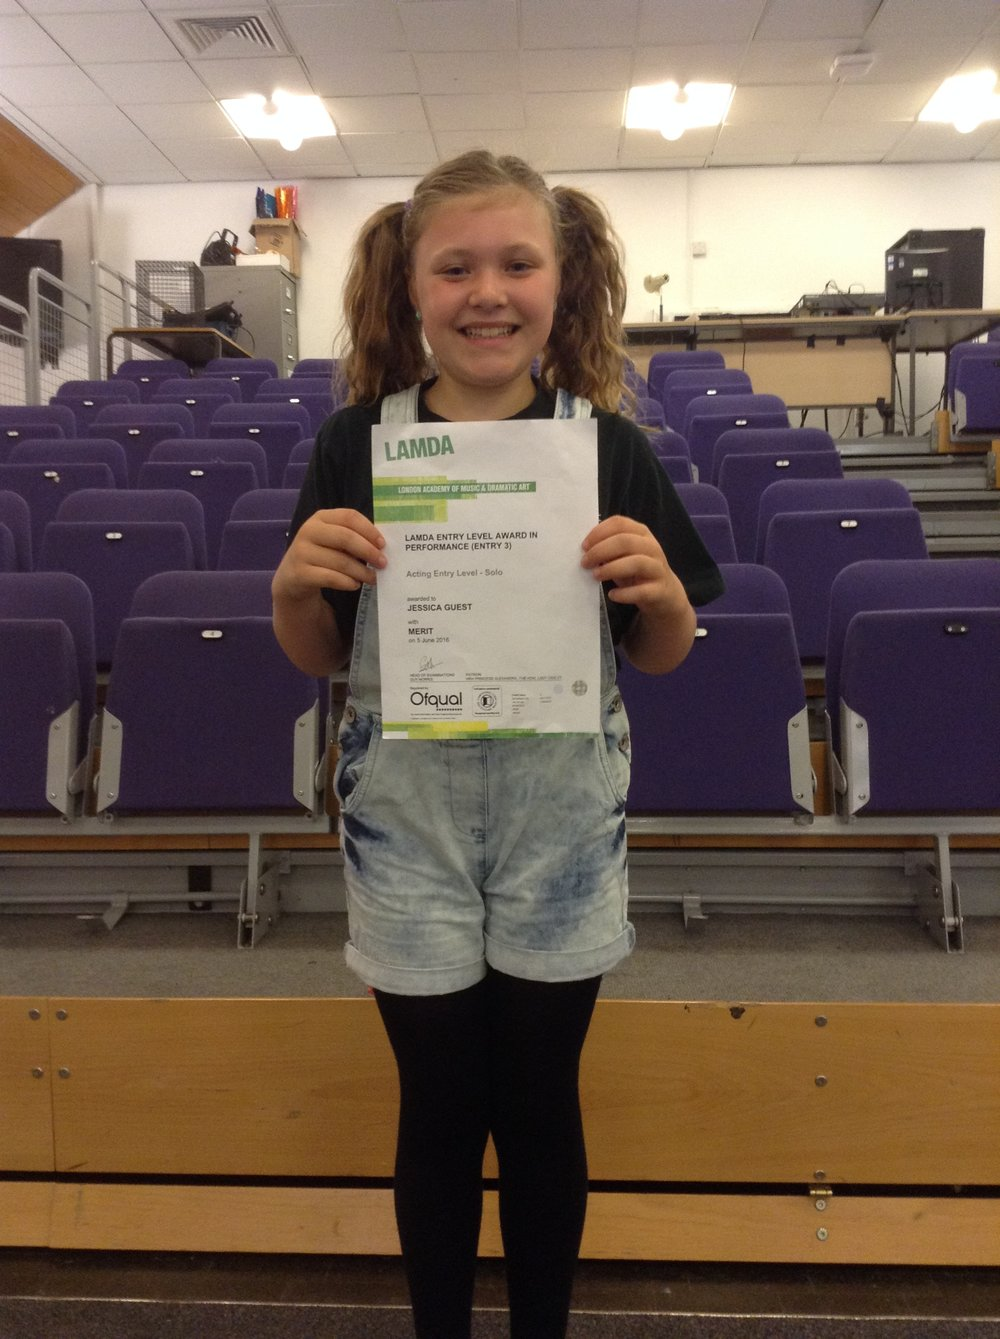 Jess with her LAMDA certificate